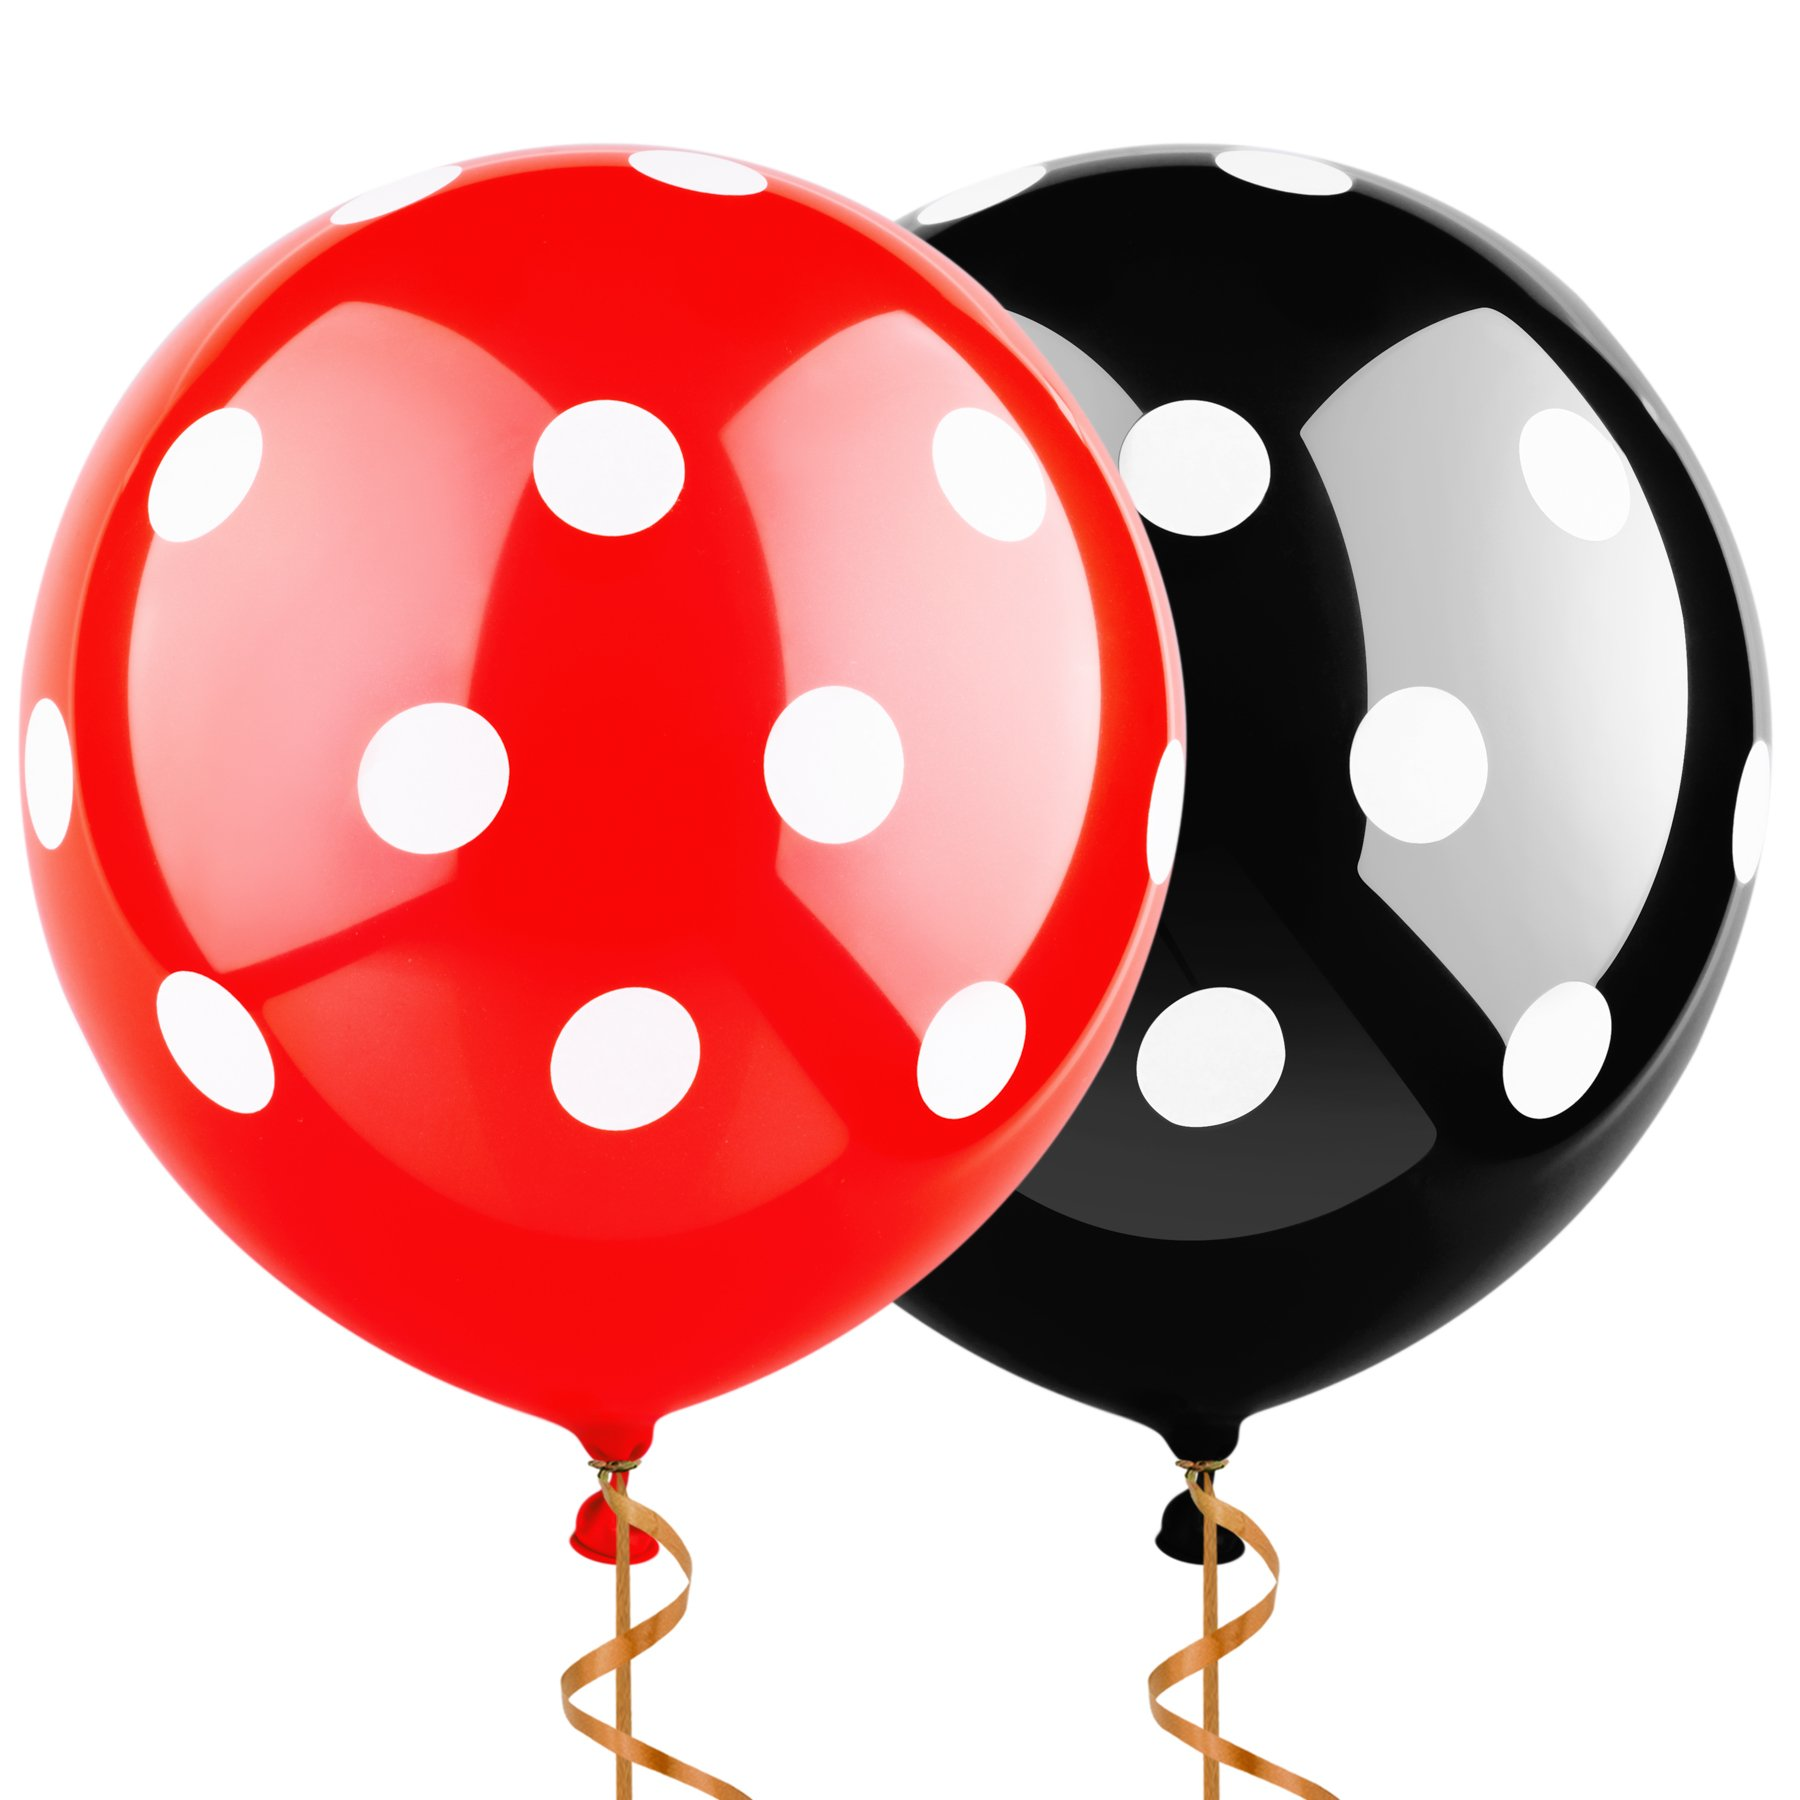 red Fancy Colours 100pcs 12-inch Round Latex Balloon For Party Decoration 2.8g Balloons Toy For Kids Having Fun